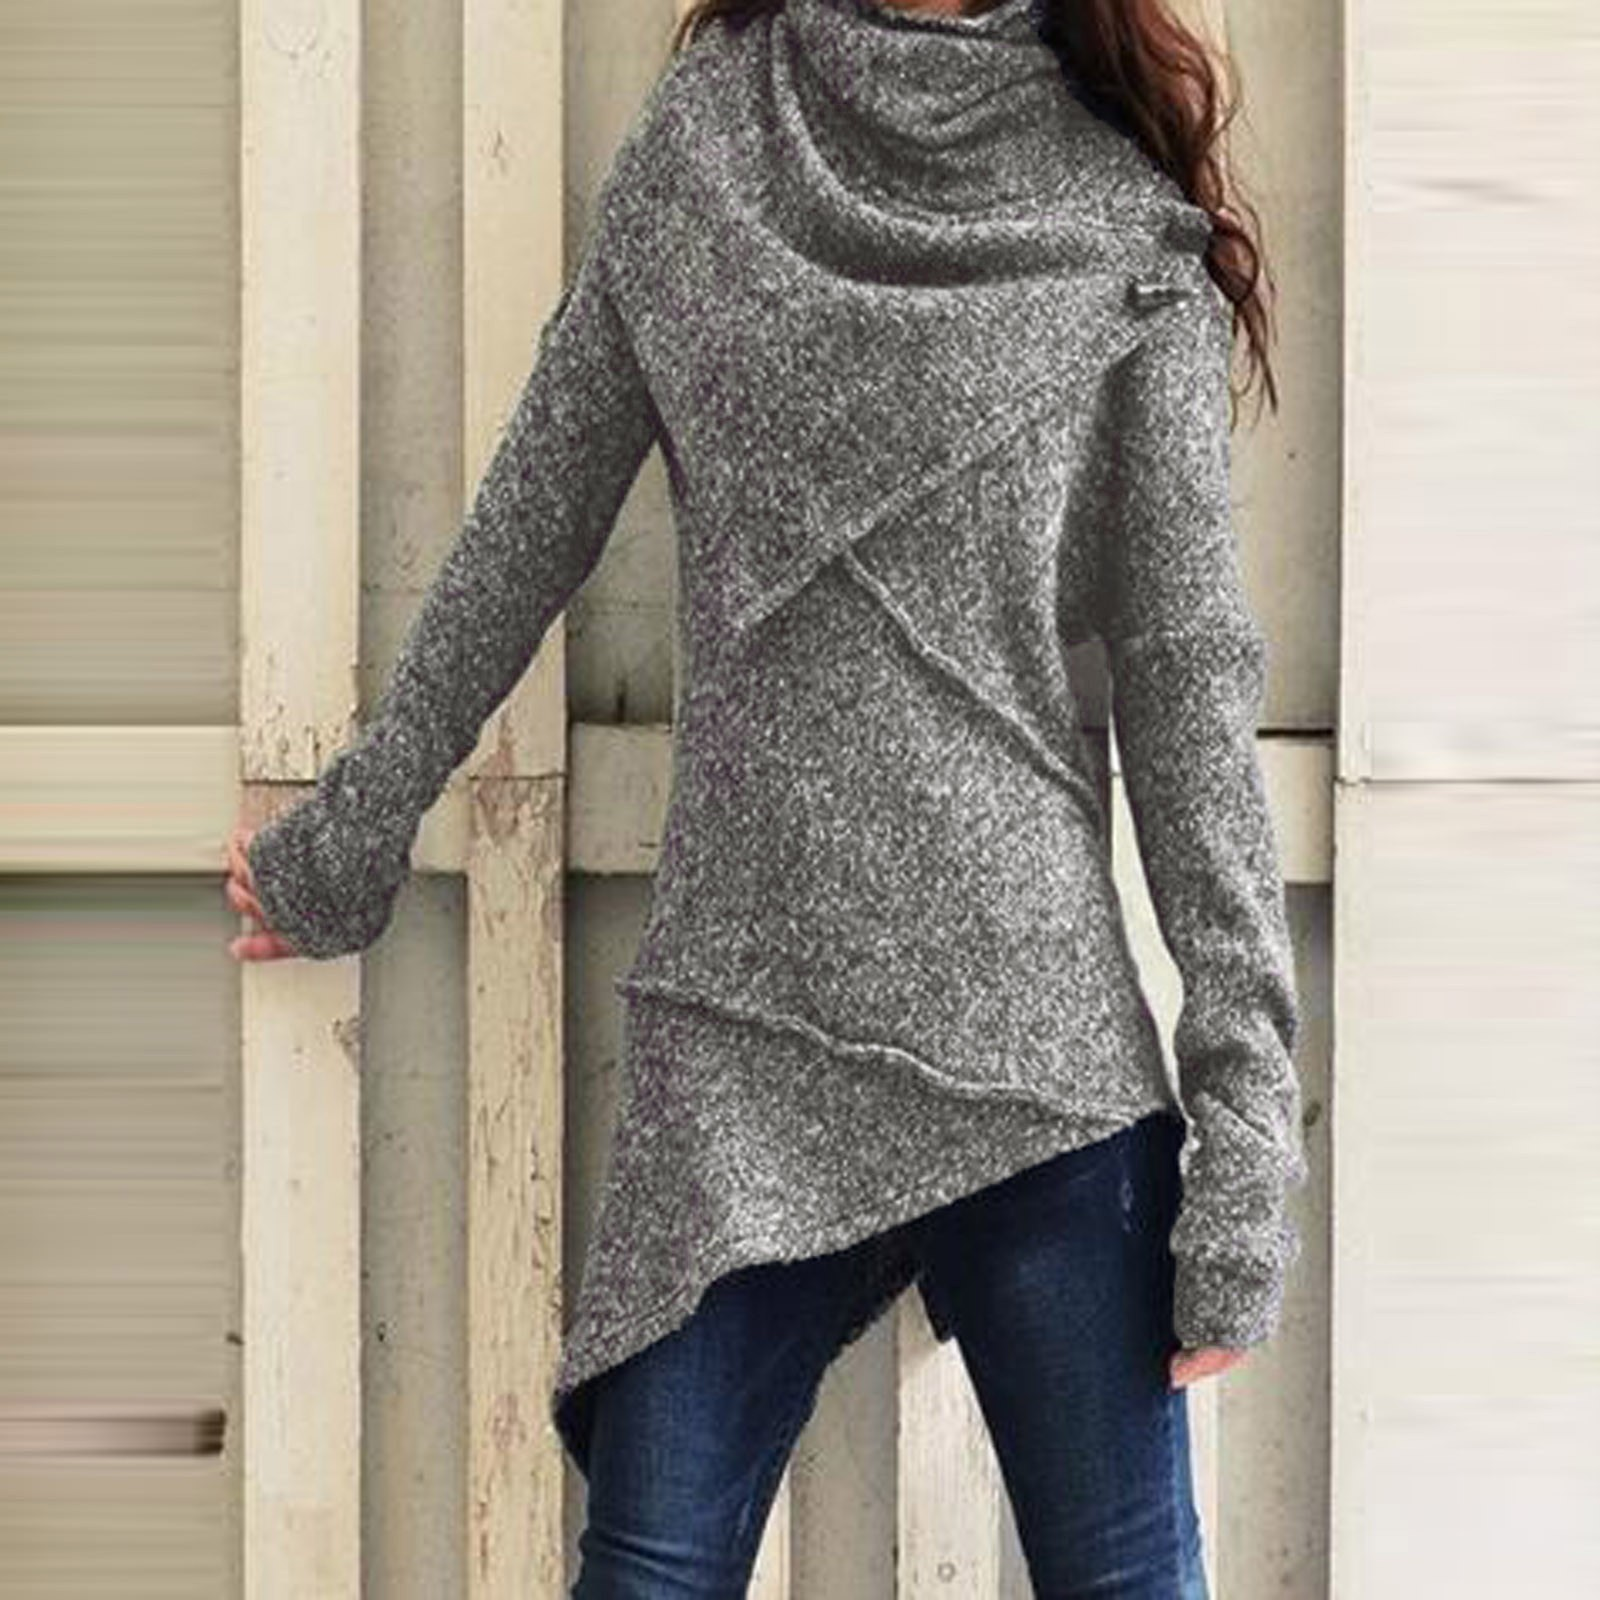 40#Womens High Collar Pure Color Blouses Fashion Long Sleeve Casual Elegant Pullover Tops Shirts Winter Women Clothing blusas 9